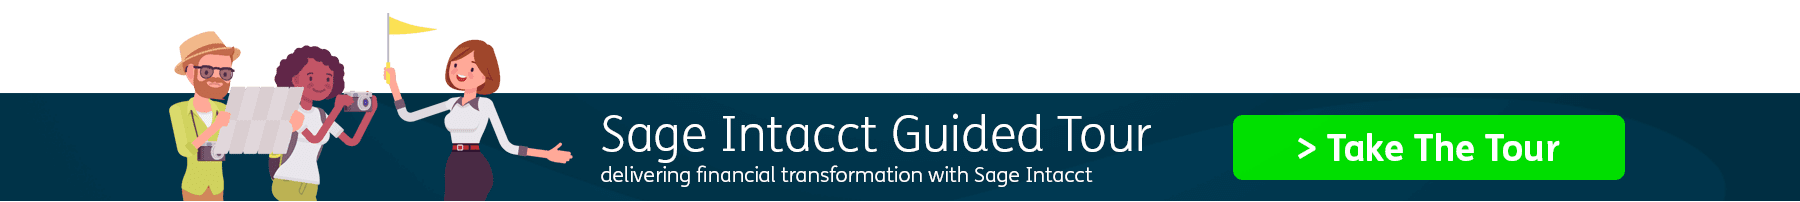 Sage Intacct Guided Tour CTA